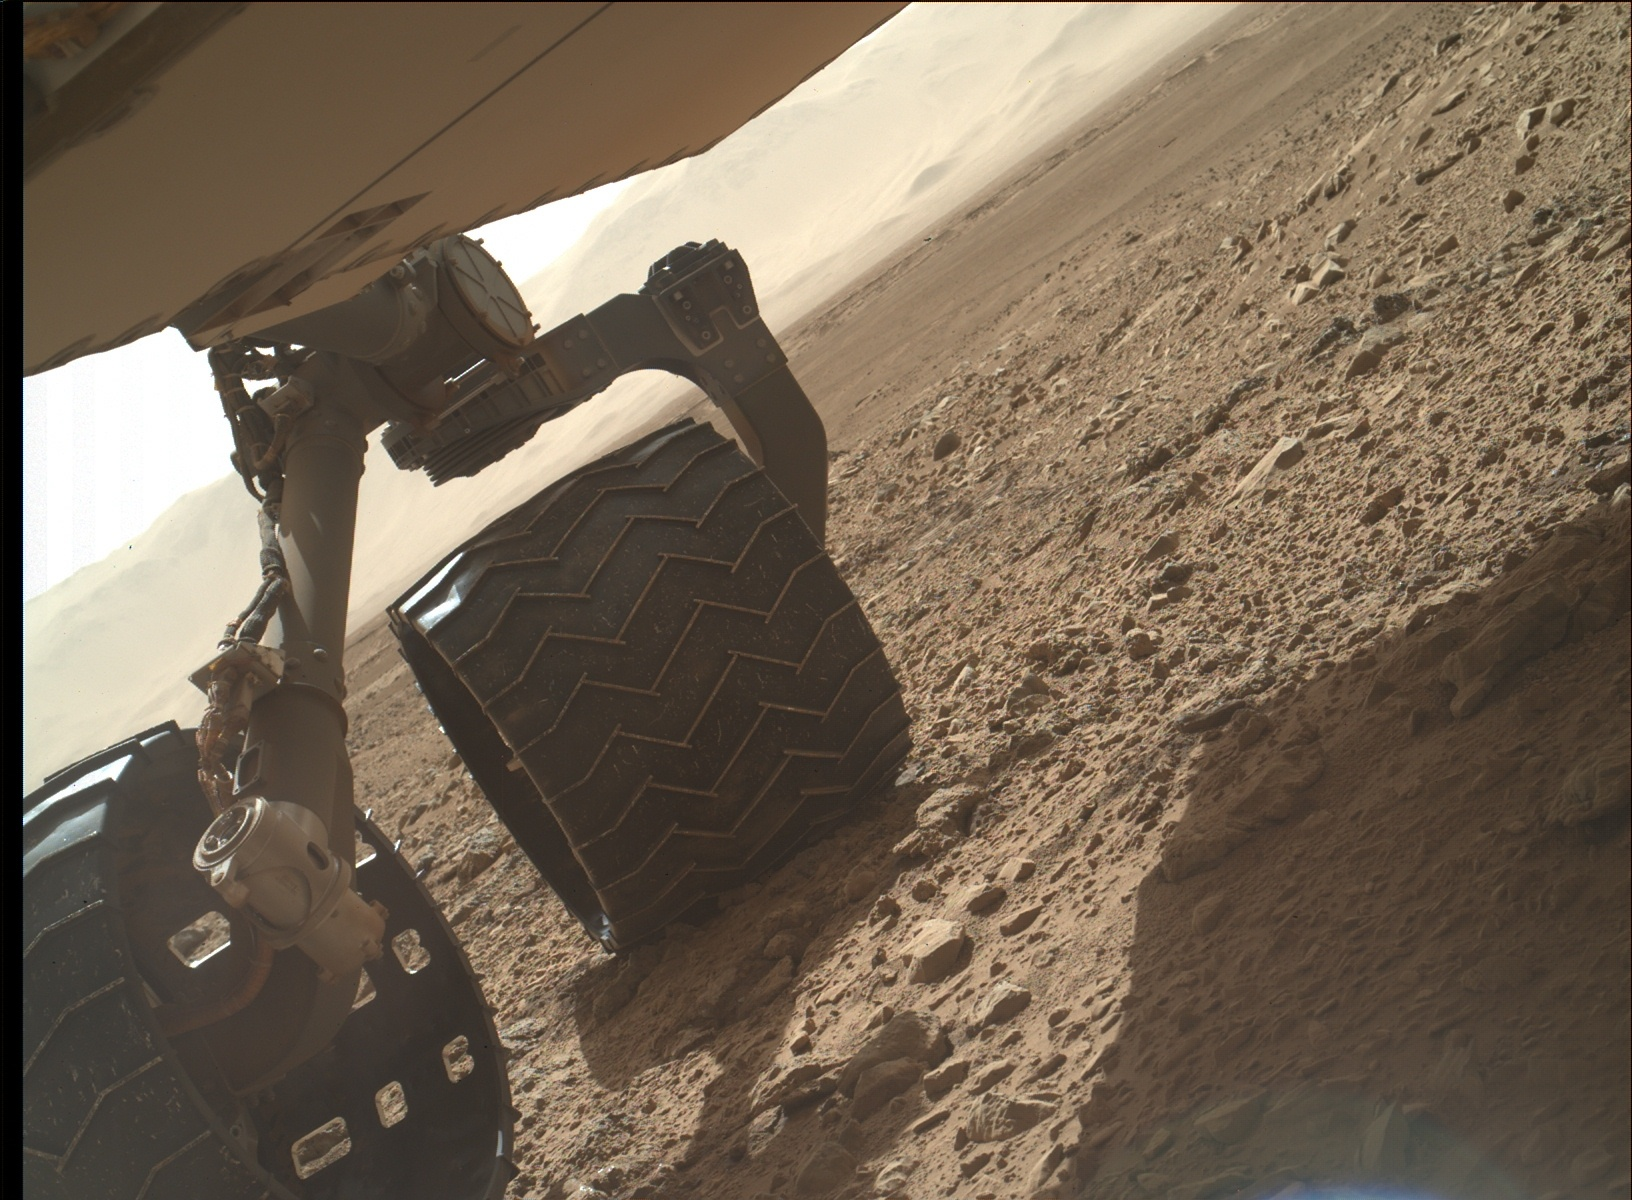 Nasa's Mars rover Curiosity acquired this image using its Mars Hand Lens Imager (MAHLI) on Sol 463